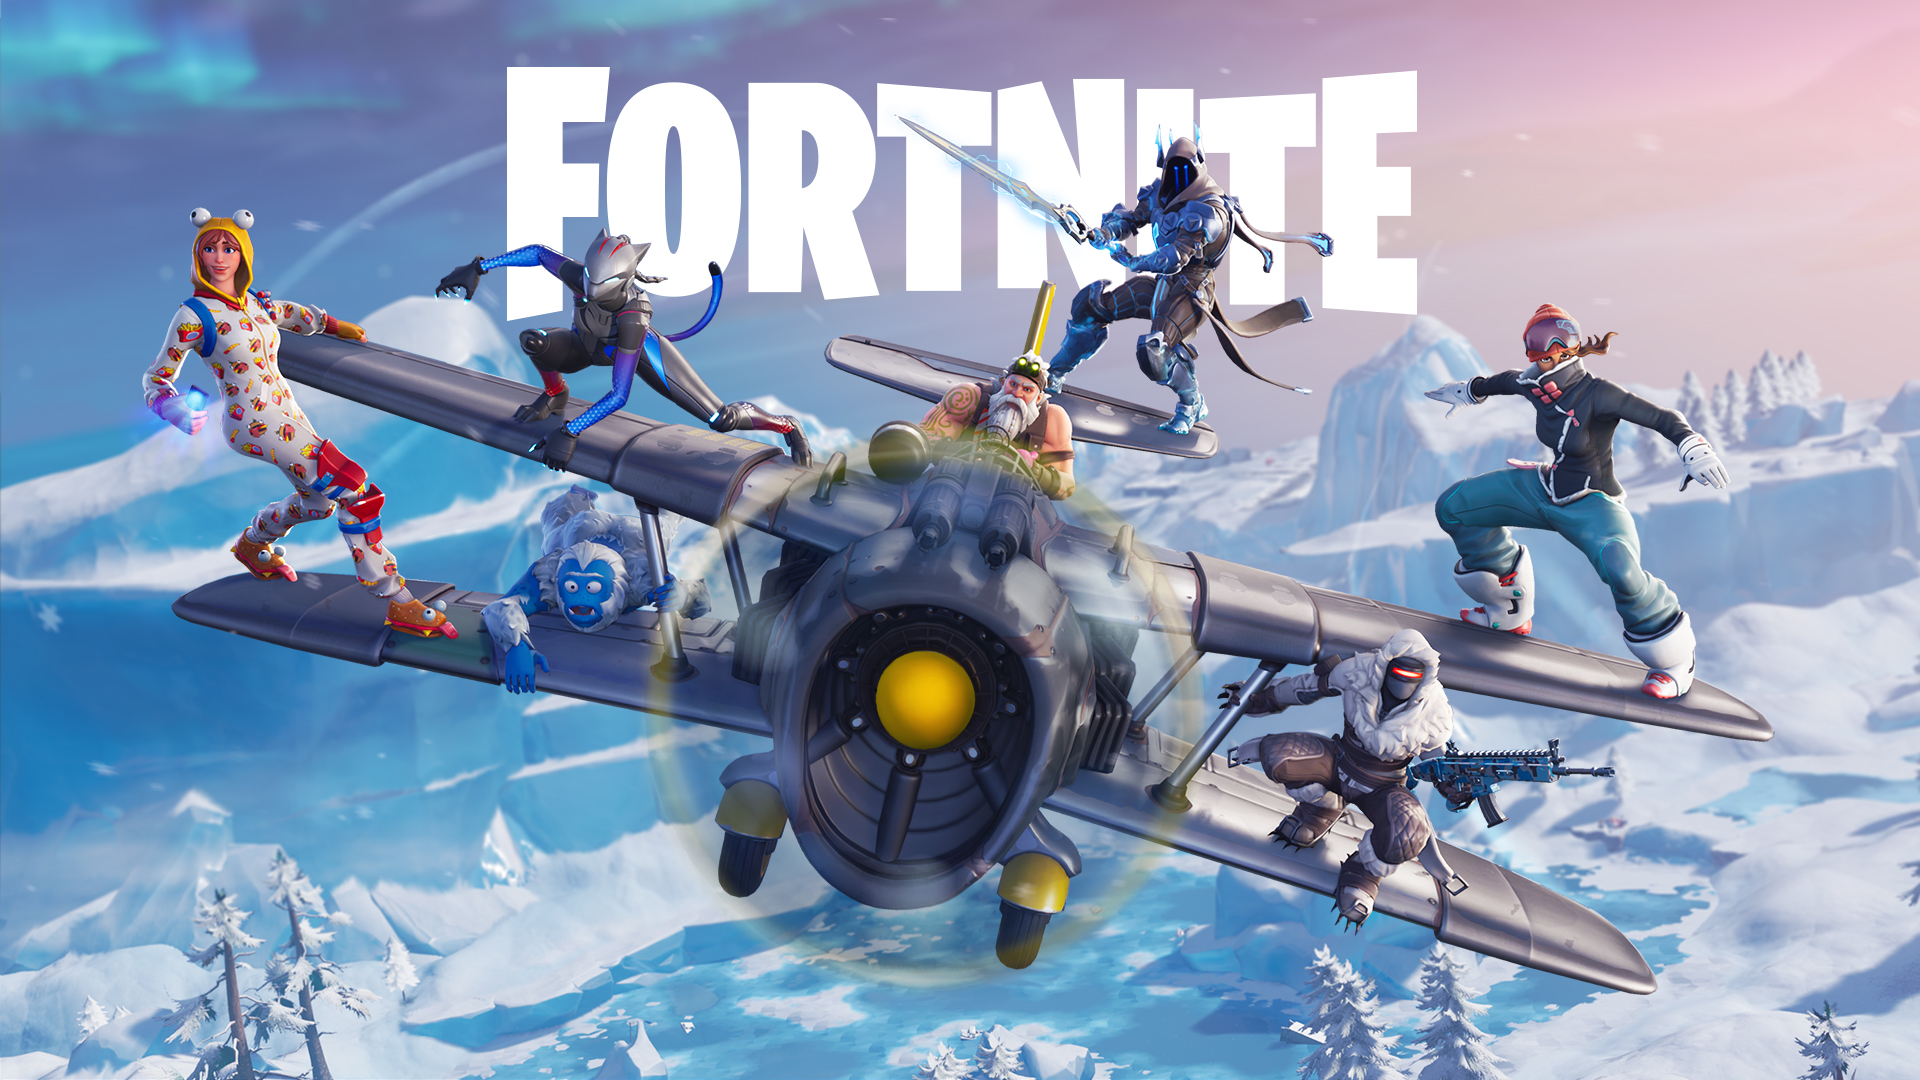 Fortnite-Saison 7-bg